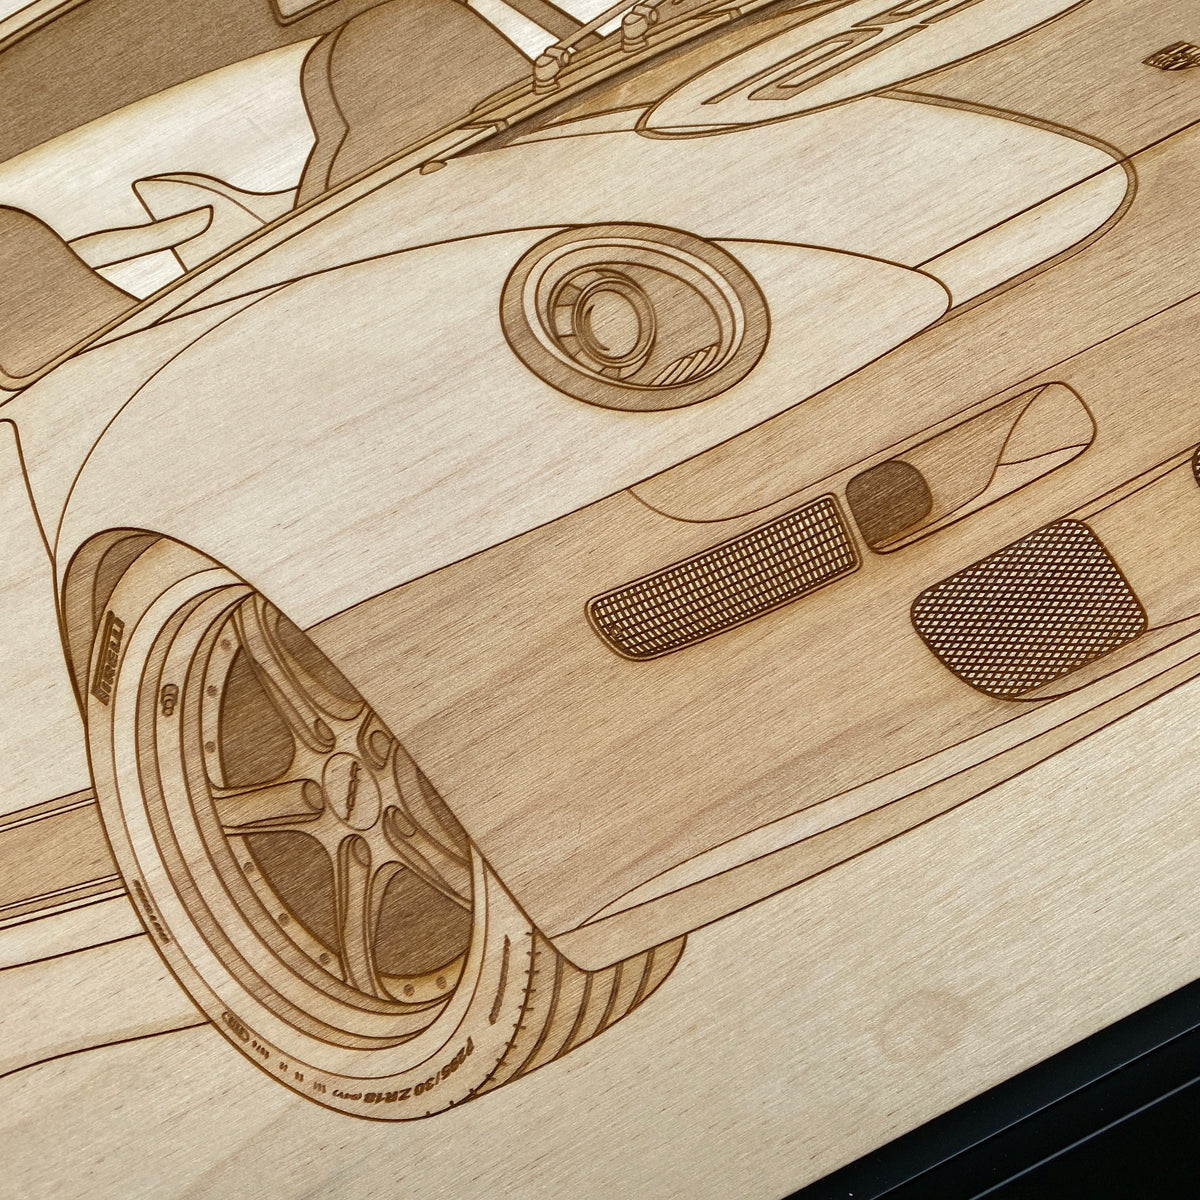 Gunther Werks 400R Gulf Framed Wood Engraved Artwork